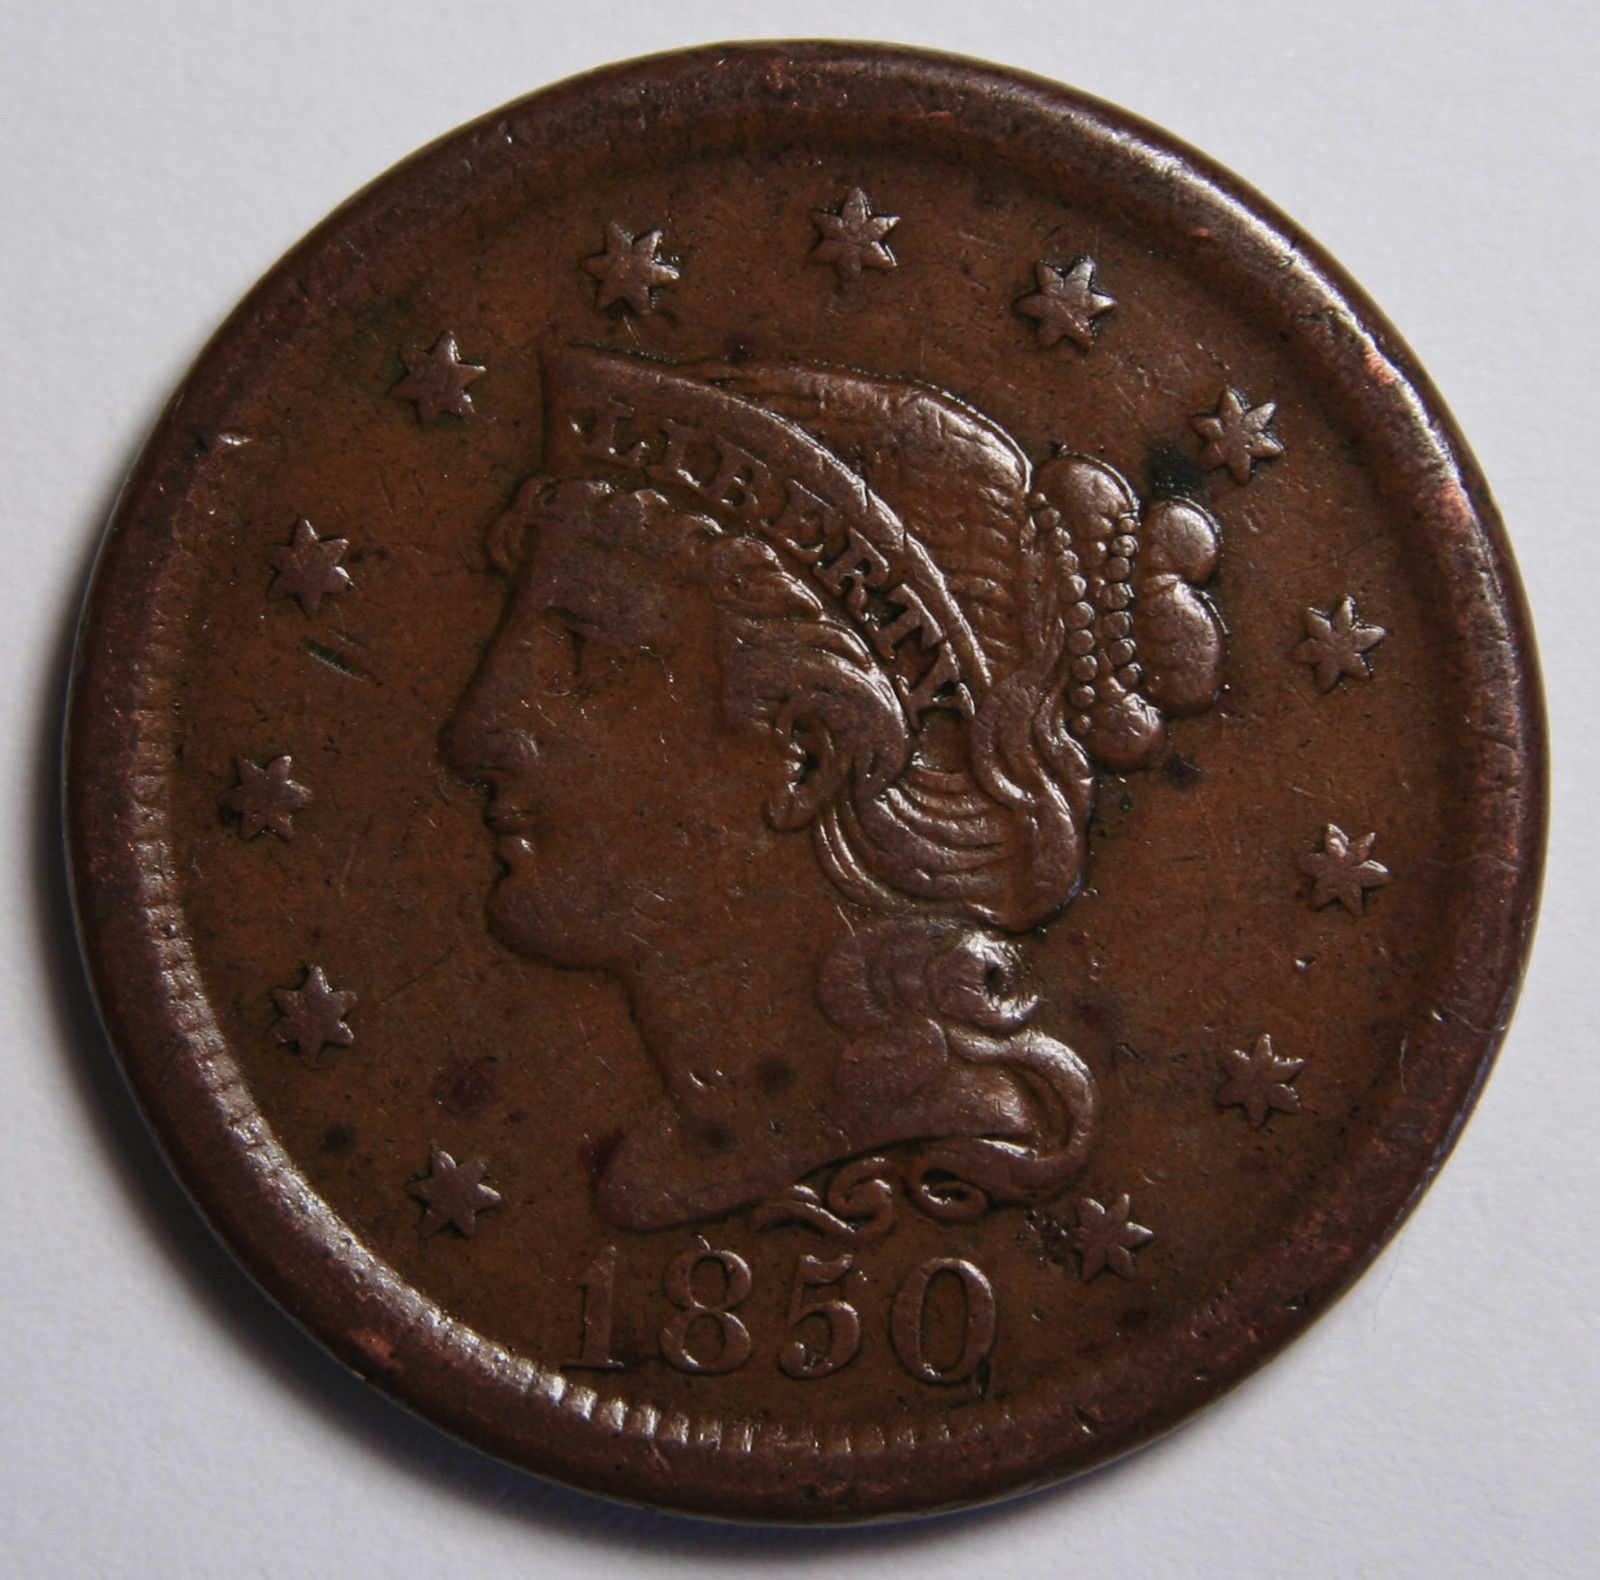 1850 Large Cent Liberty Braided Hair Head Coin Lot # MZ 4099